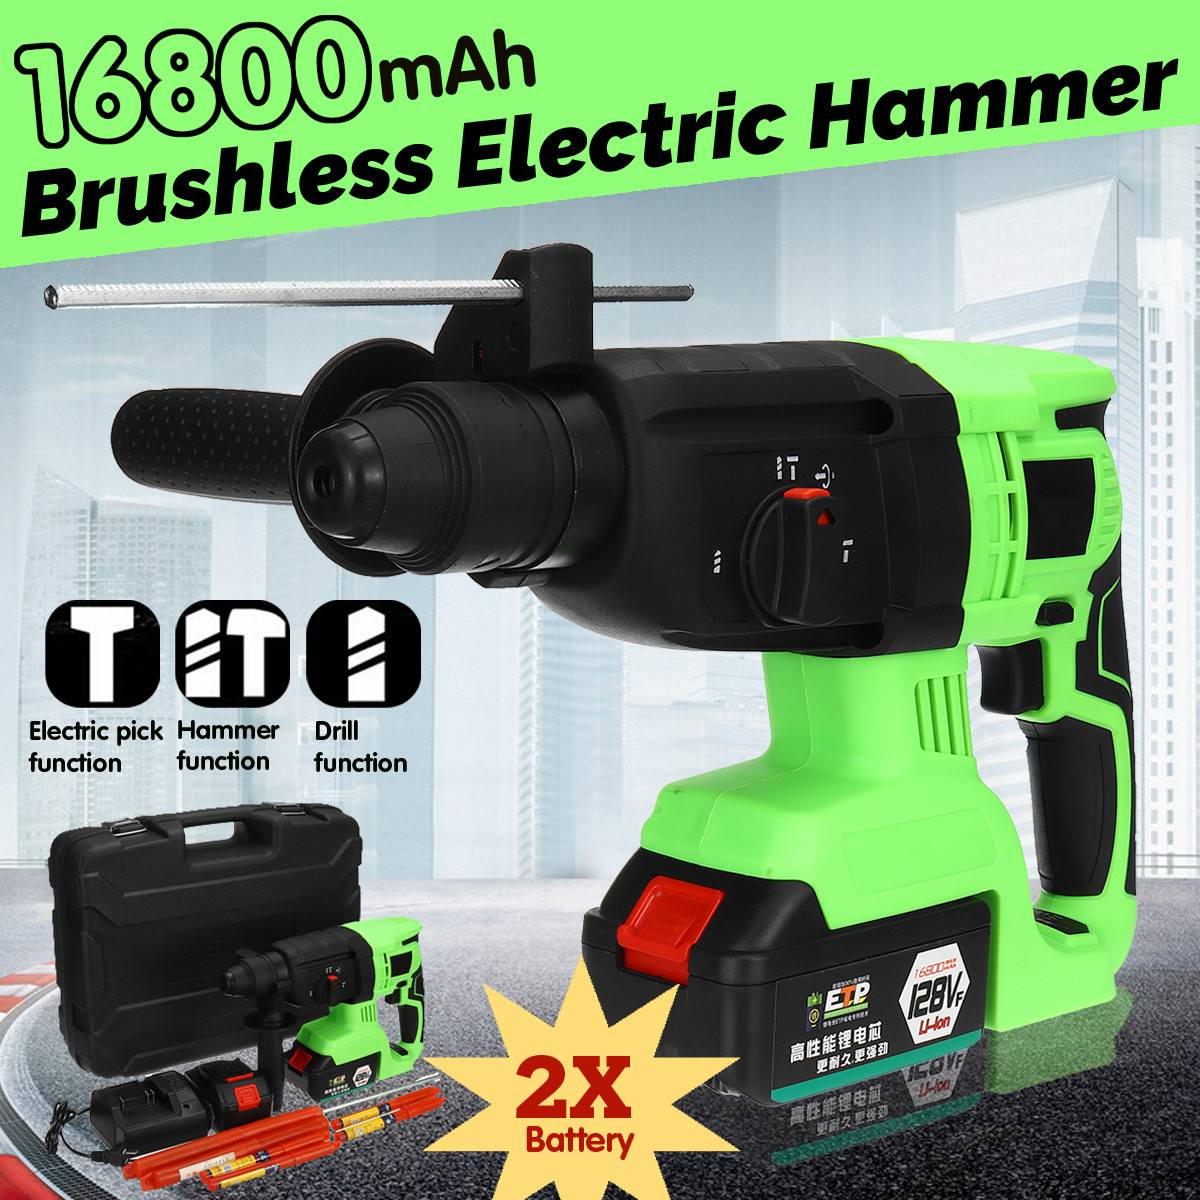 16800mAh 128VF Electric Hammer Brushless Cordless Lithium-Ion Hammer Drill with 2 Battery  Tools